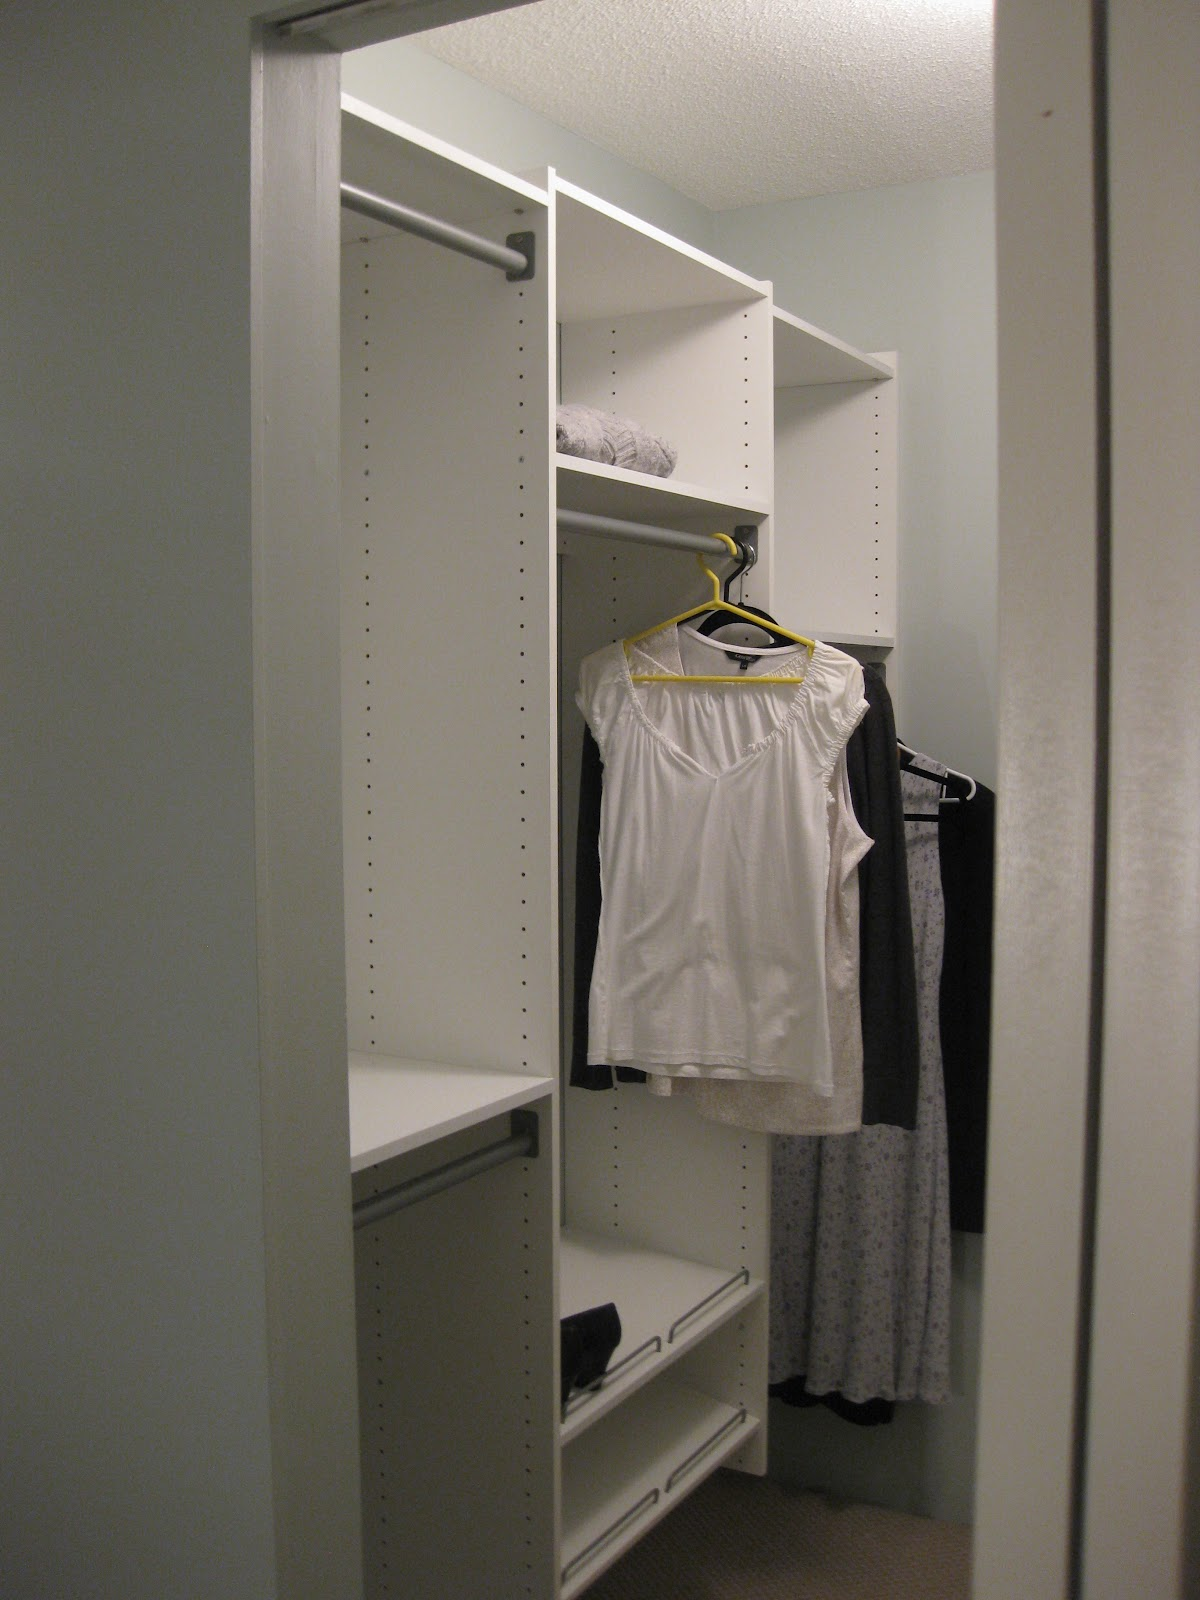 I Love My Closet Now!